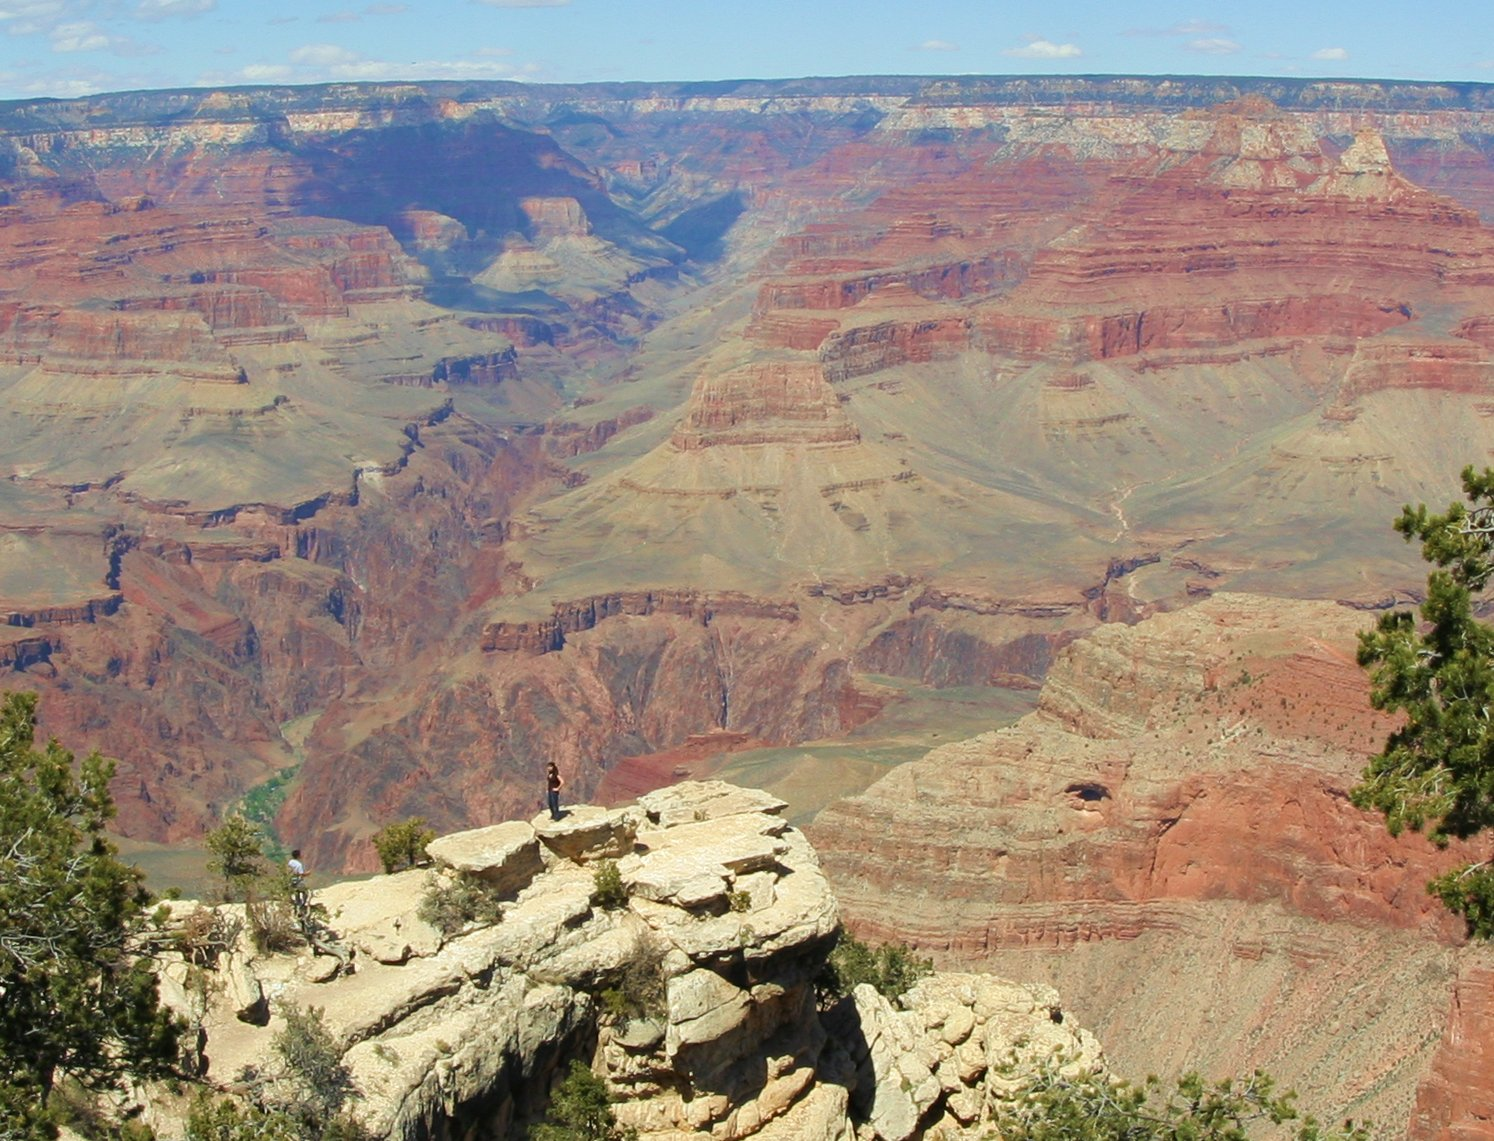 Free Grand Canyon Stock Photo - FreeImages.com